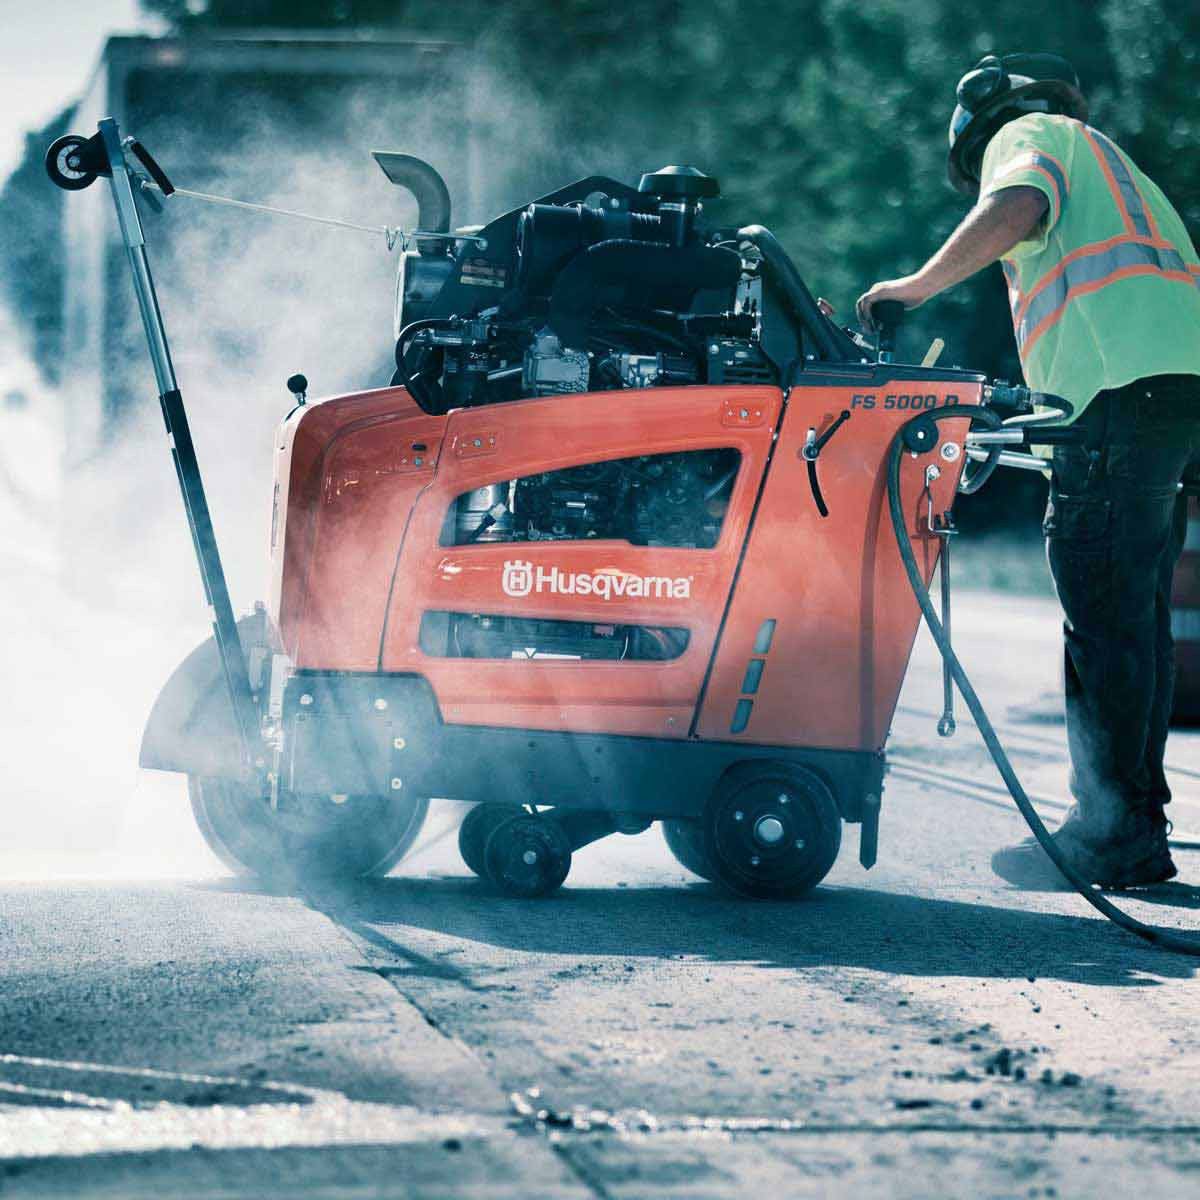 Husqvarna FS 5000 D highway work